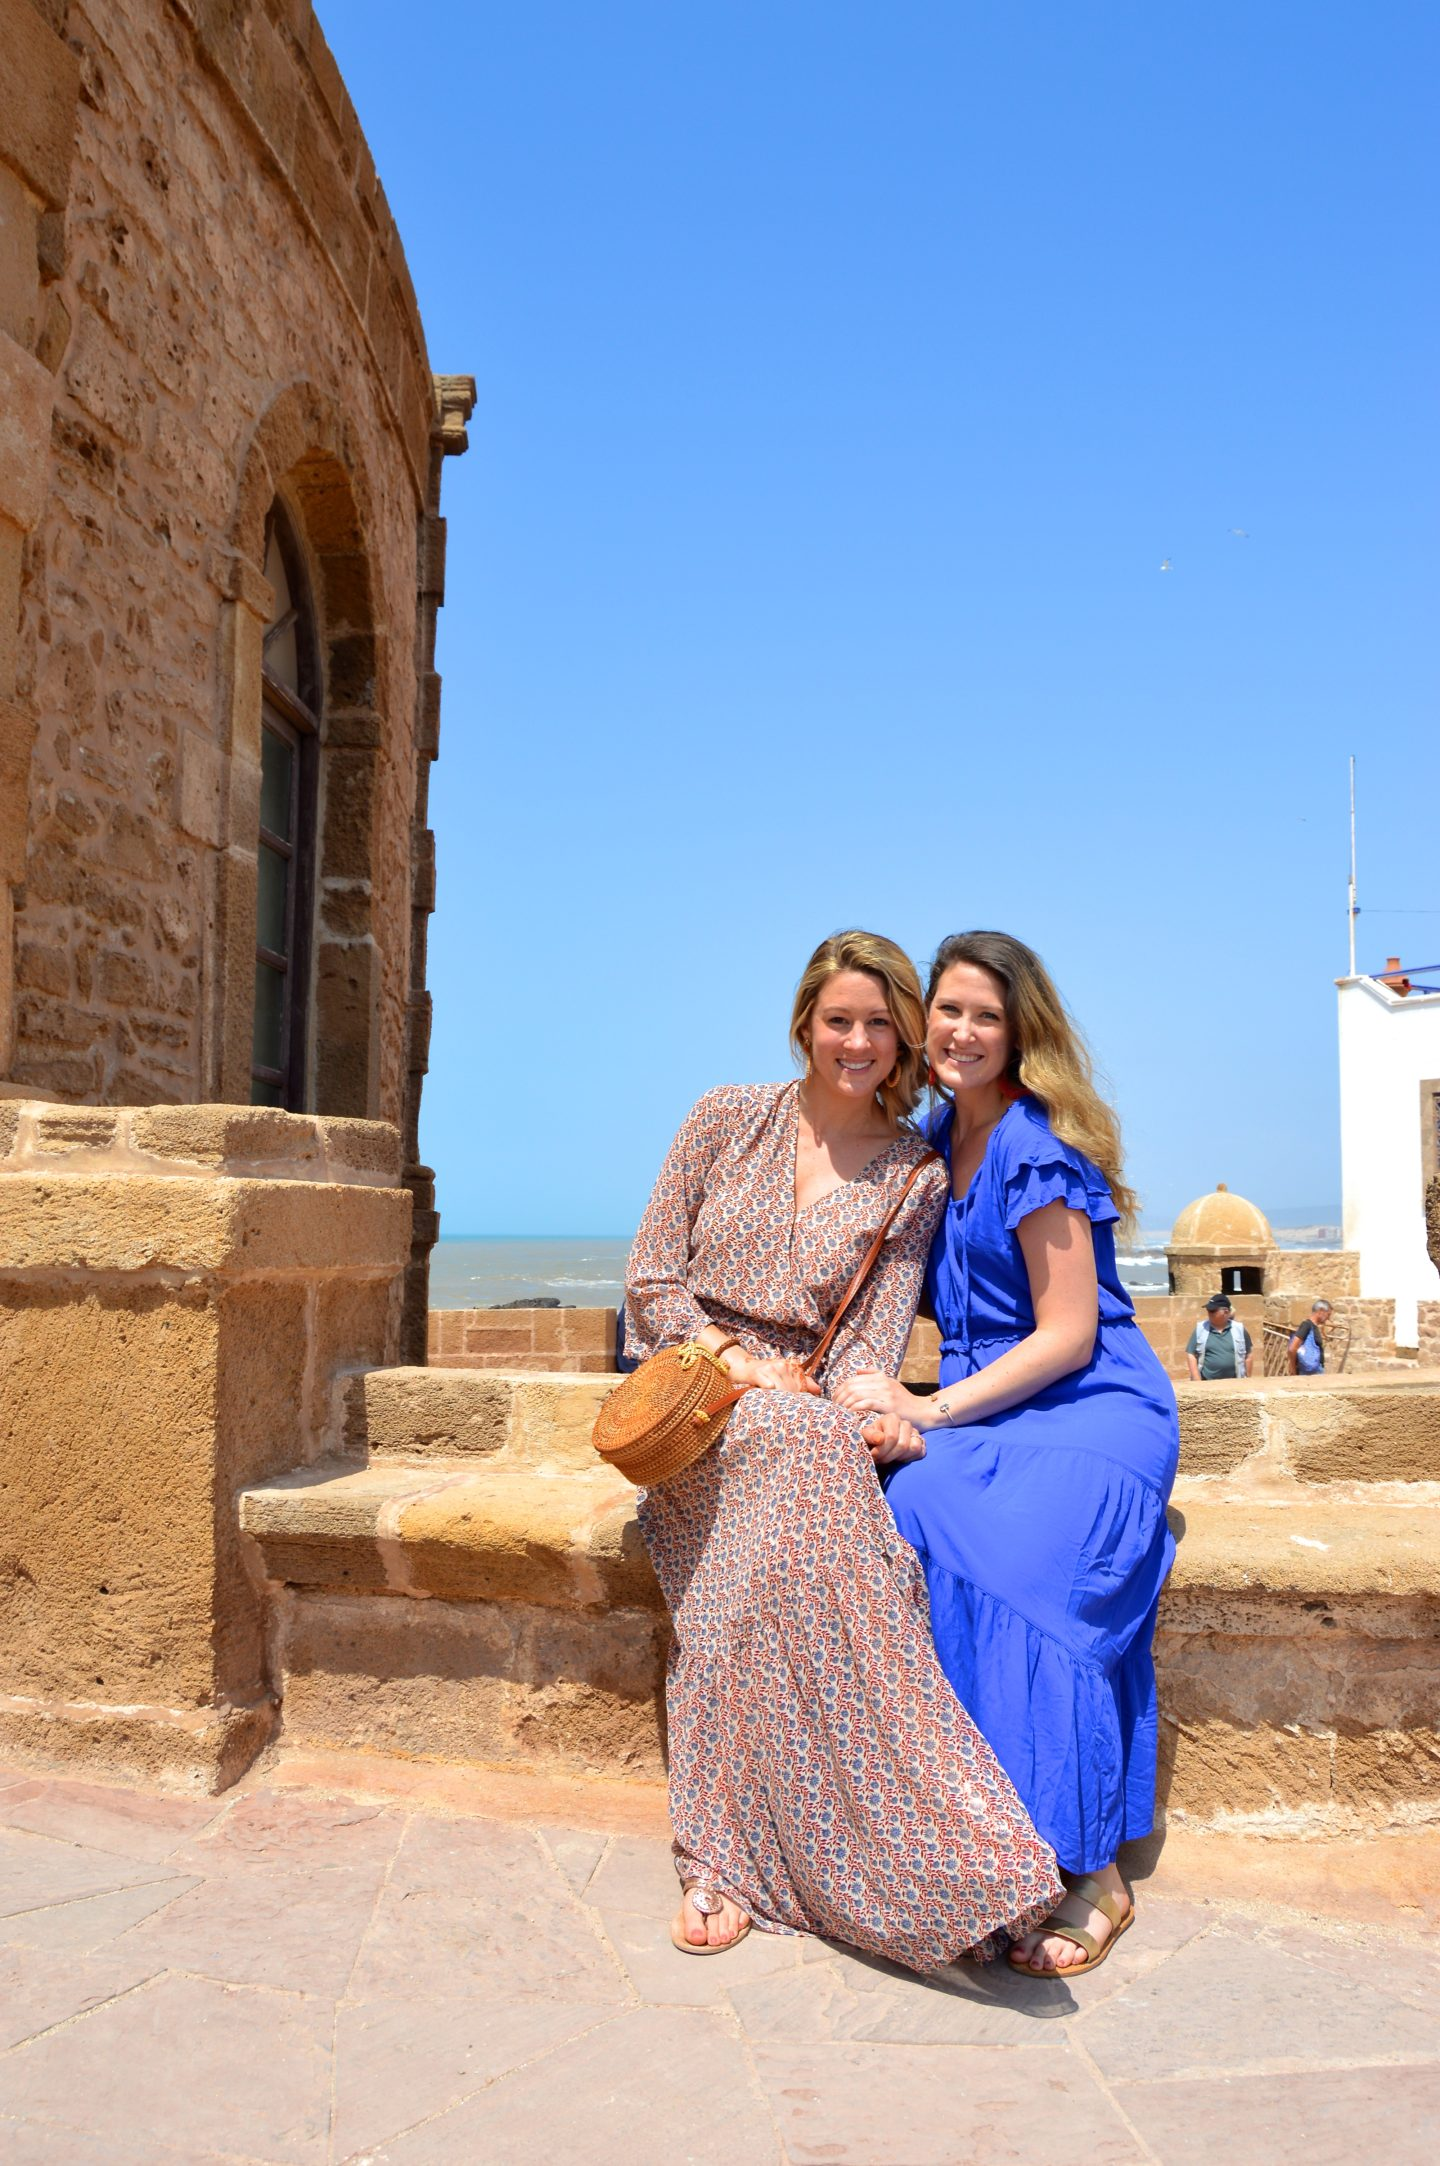 Old and new friends of We Are Travel Girls getaway in Morocco.